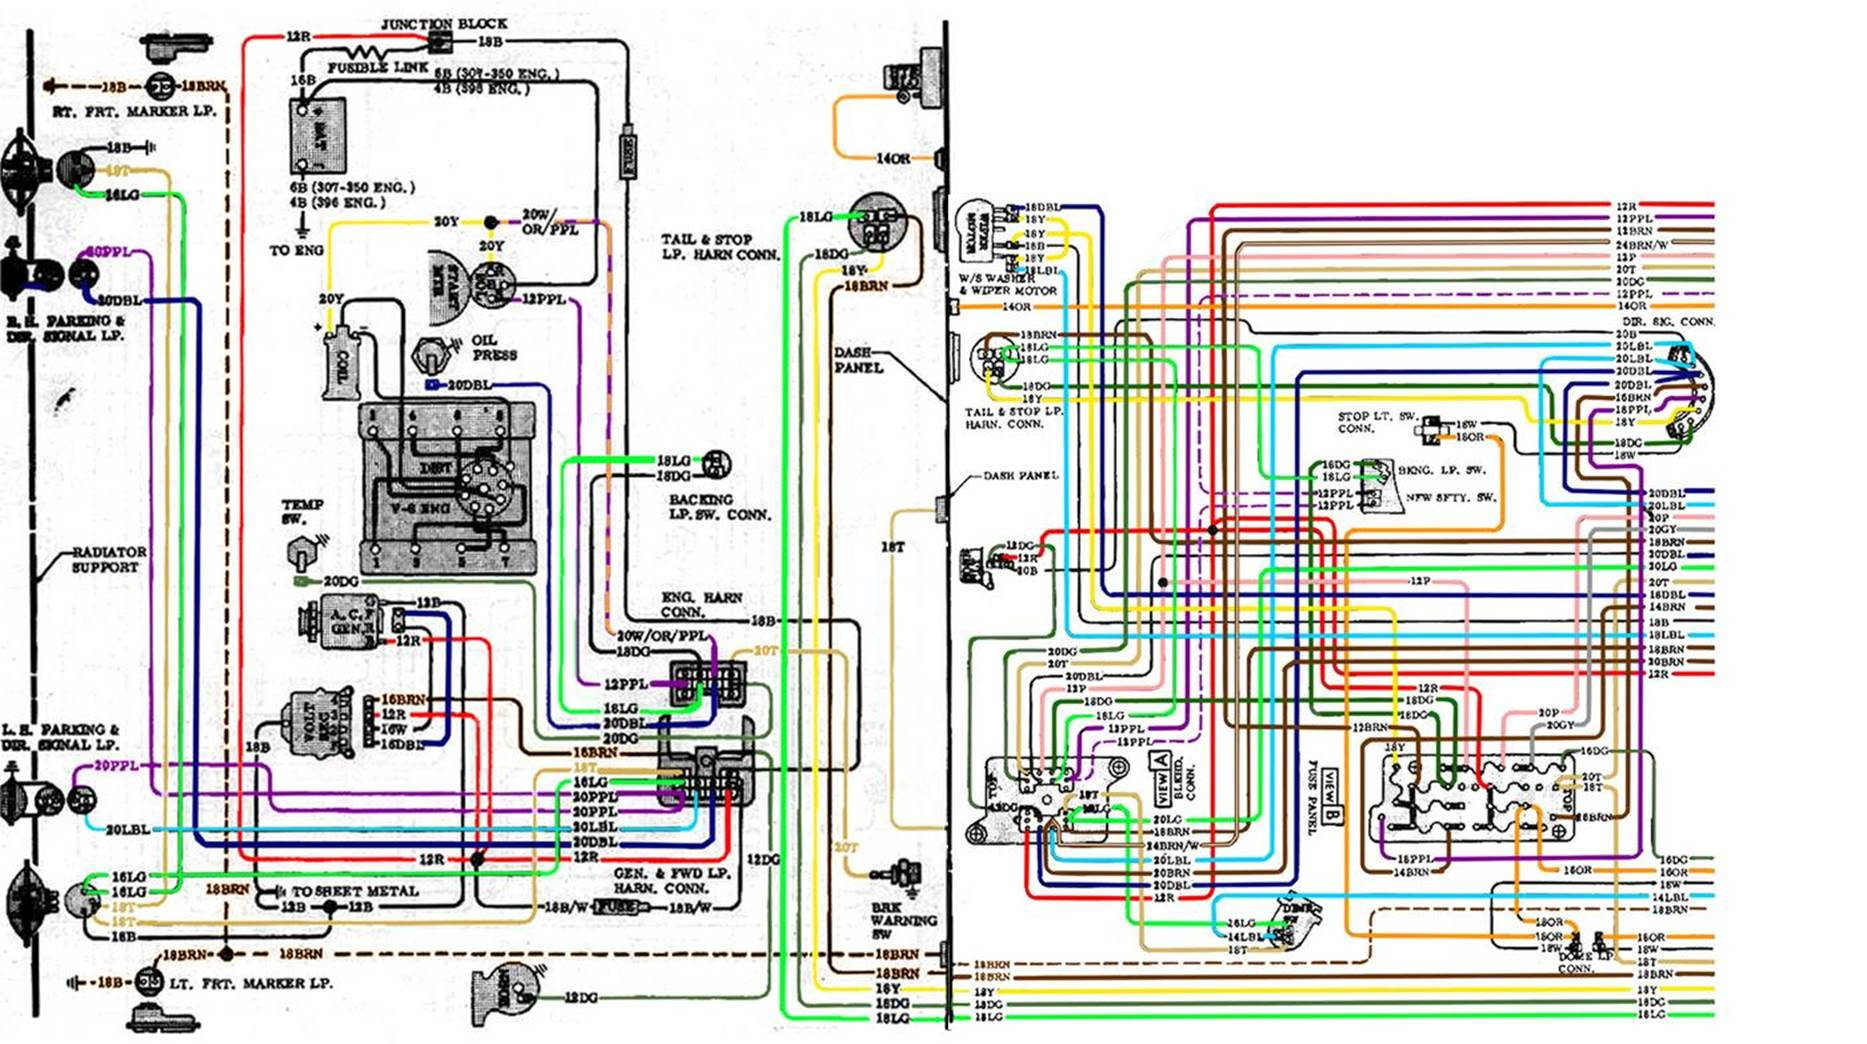 image002 67 72 chevy wiring diagram 67 chevelle ignition switch wiring diagram at gsmx.co